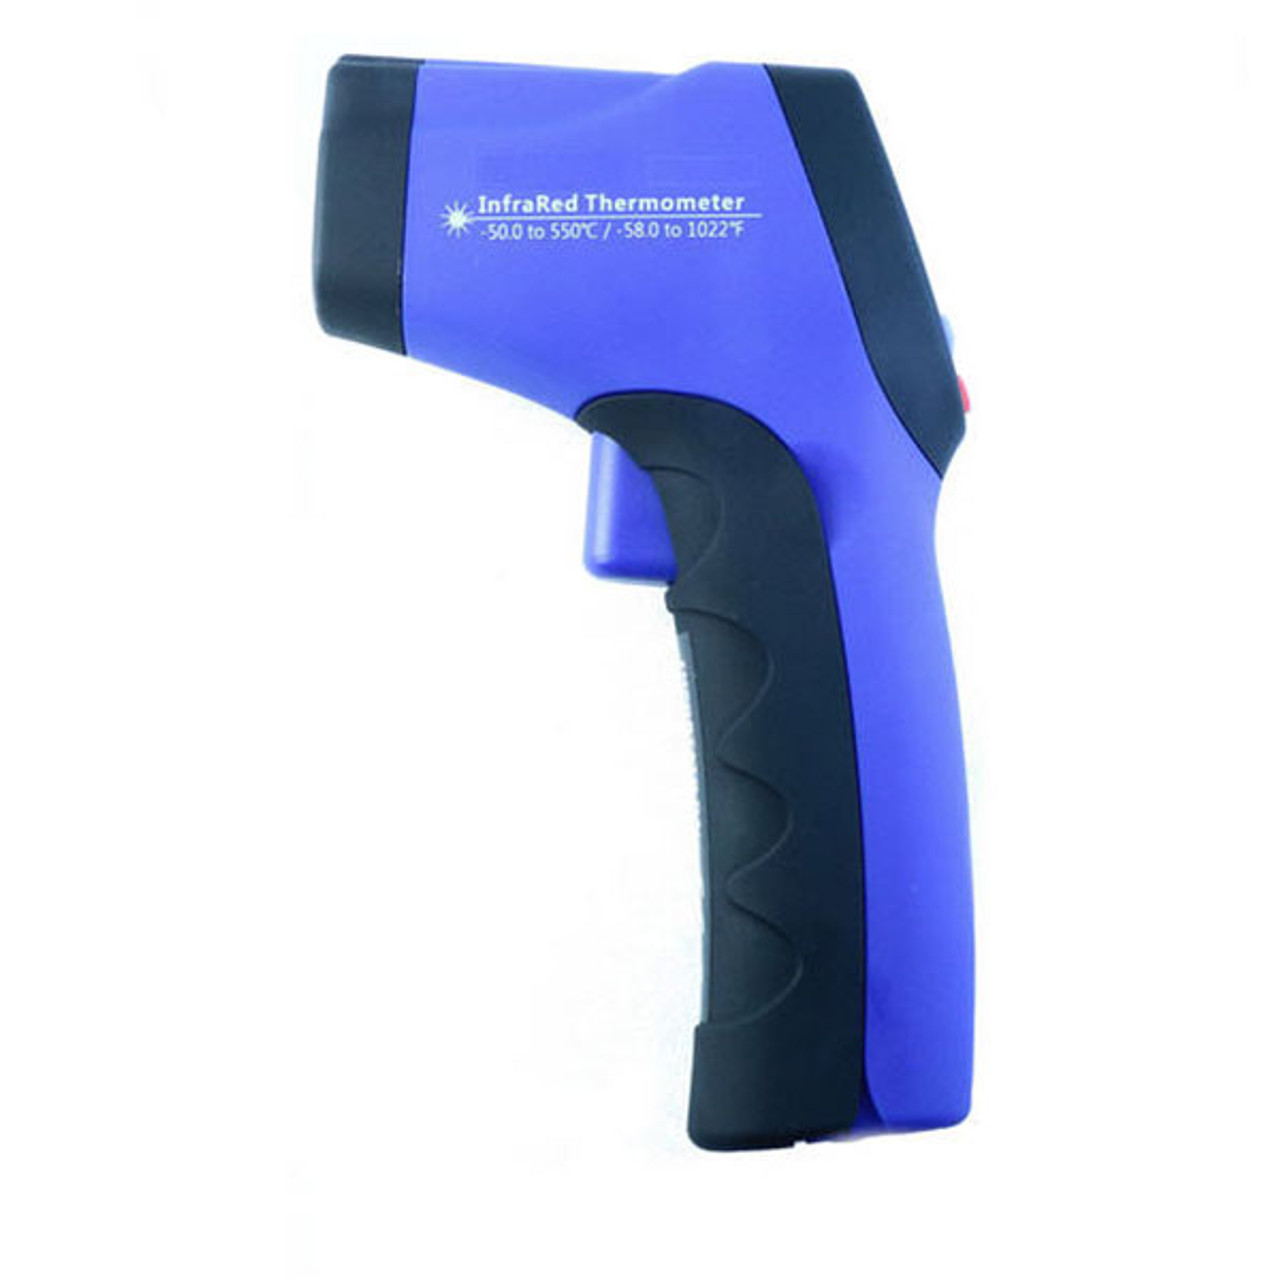 Product image for Digitalk Professional New Model Infrared Thermometer   CX Computer Superstore